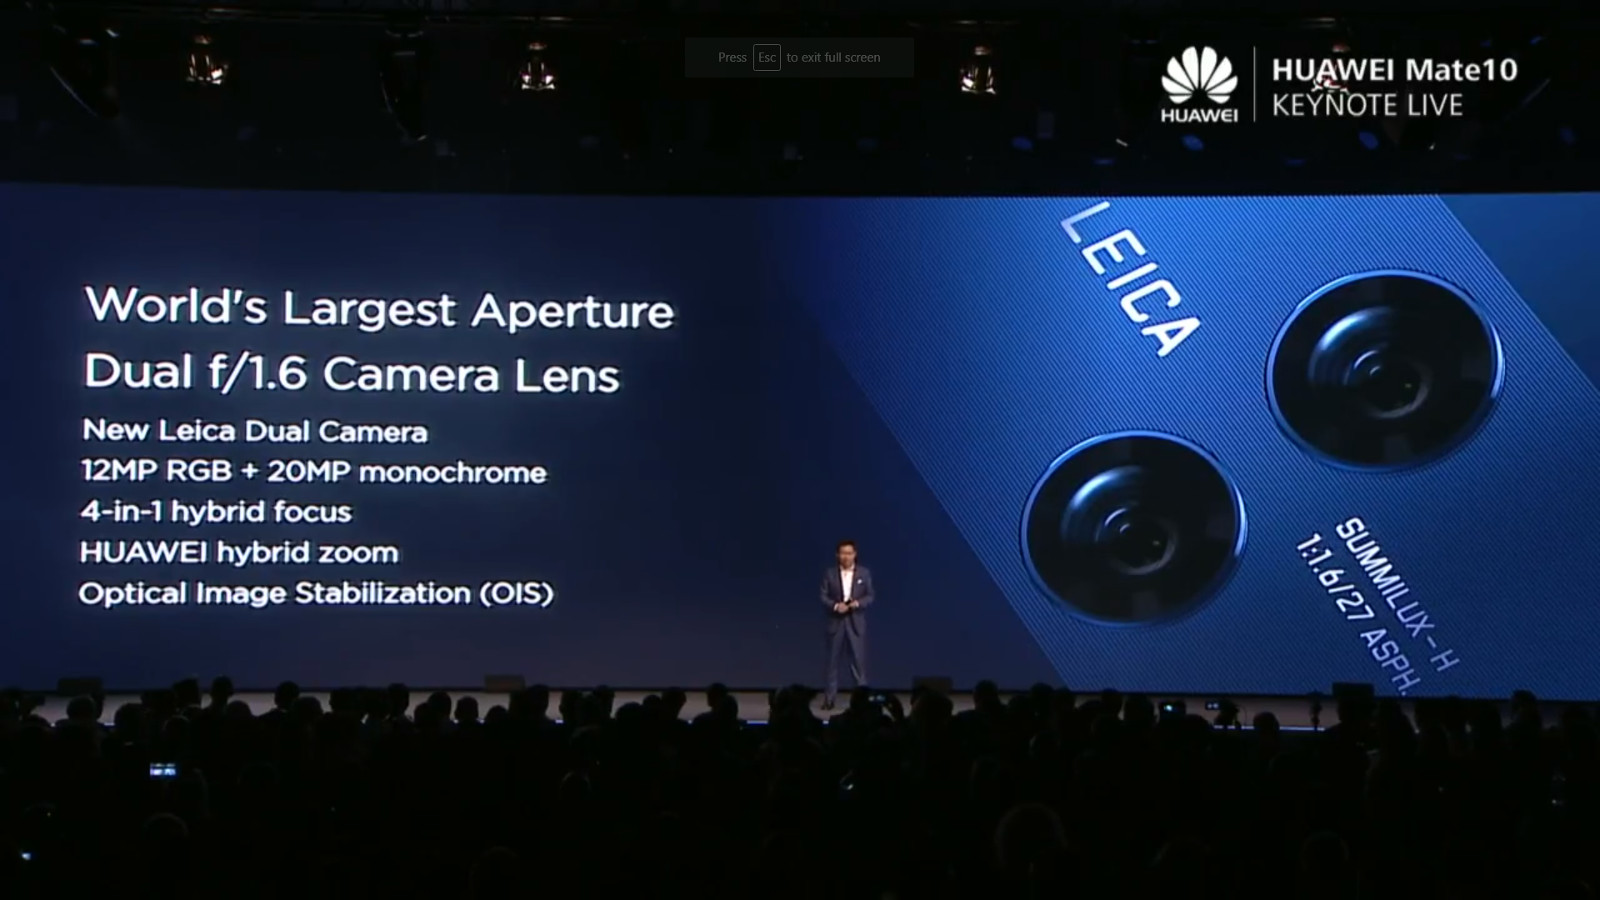 Huawei Mate 10 revealed, packing AI smarts and more - Gearburn